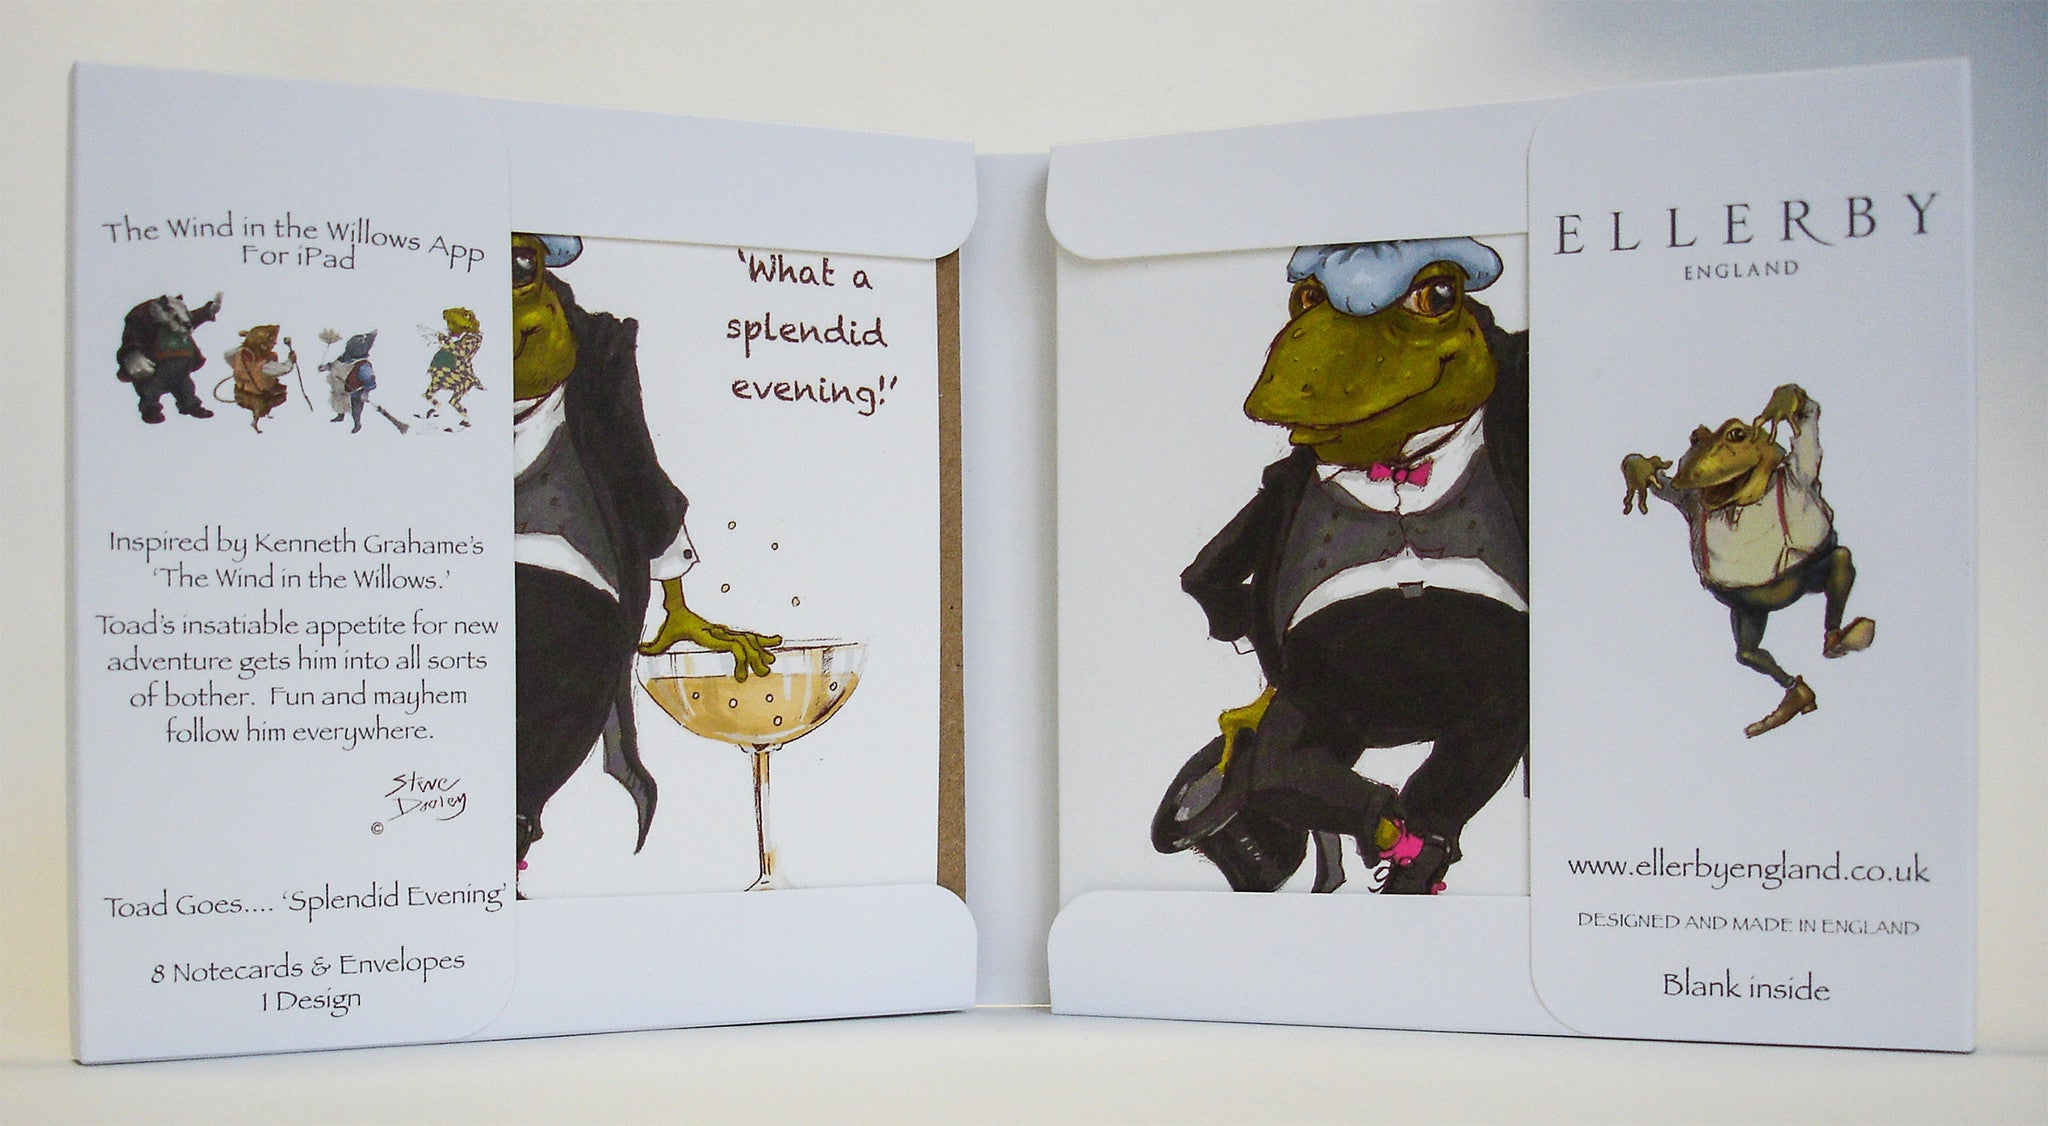 Toad Goes... 'Splendid Evening' - Set of 8 Note Cards - Ellerby England